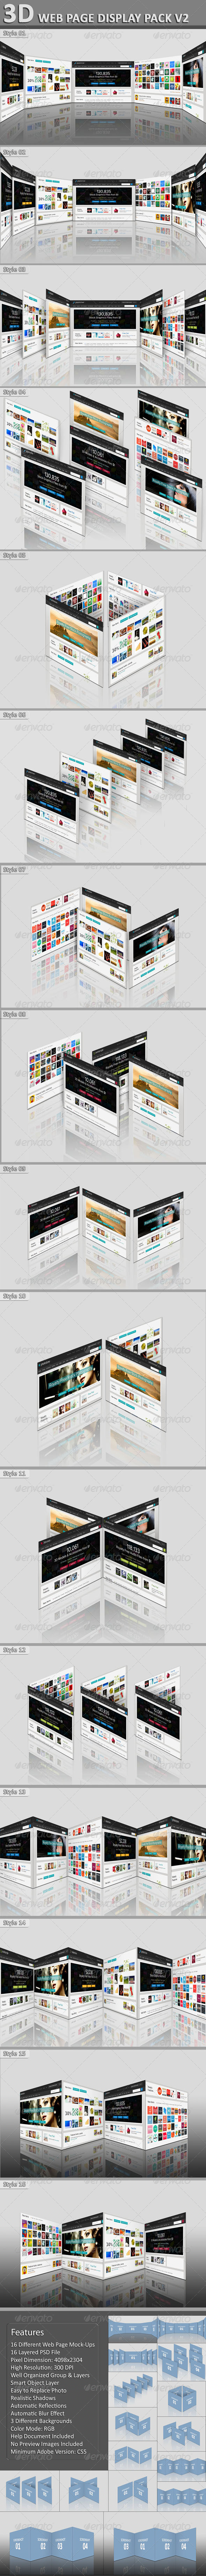 3D Web Page Display Pack V2